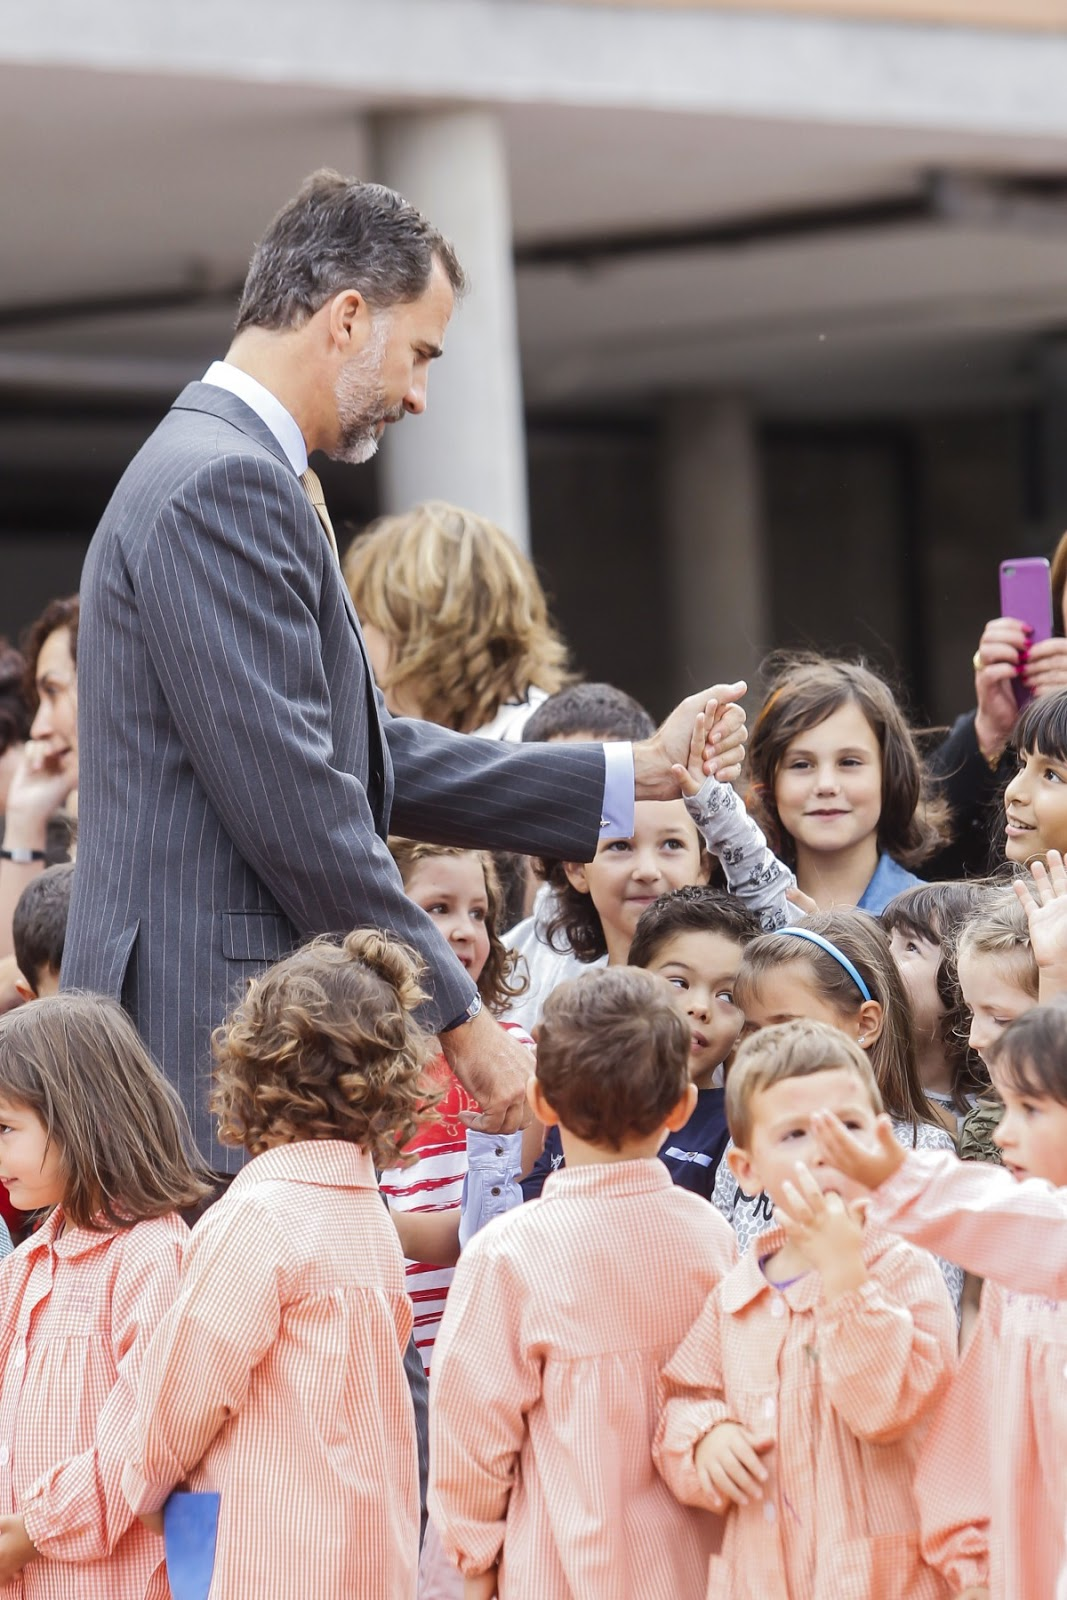 Queen Letizia in particular received a warm and adorable welcome by a girl, who threw her arms around the Queen's legs.